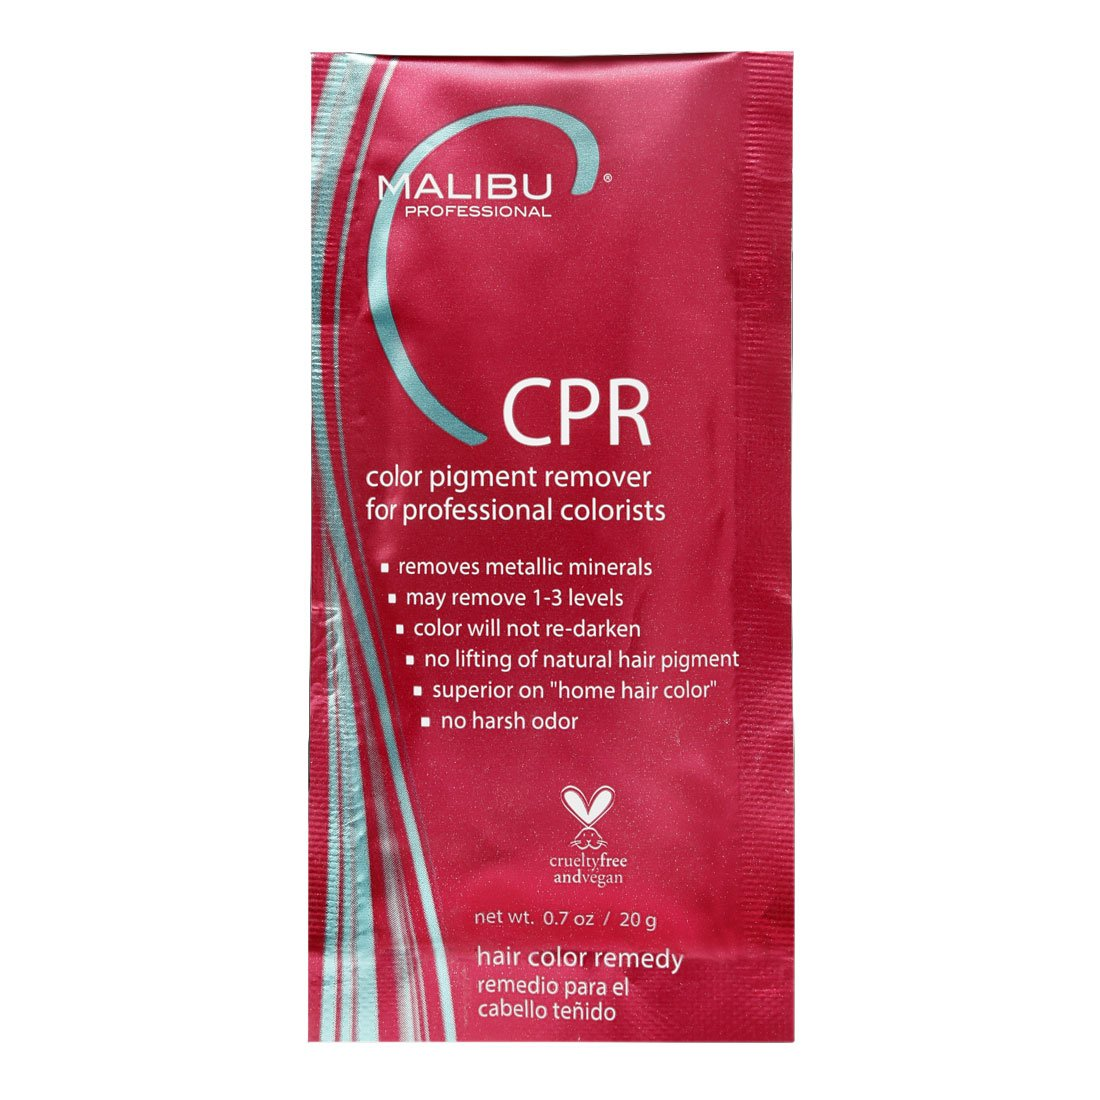 MALIBU C CPR Color Pigment Reducer 3 packets by Malibu Wellness by Malibu Wellness